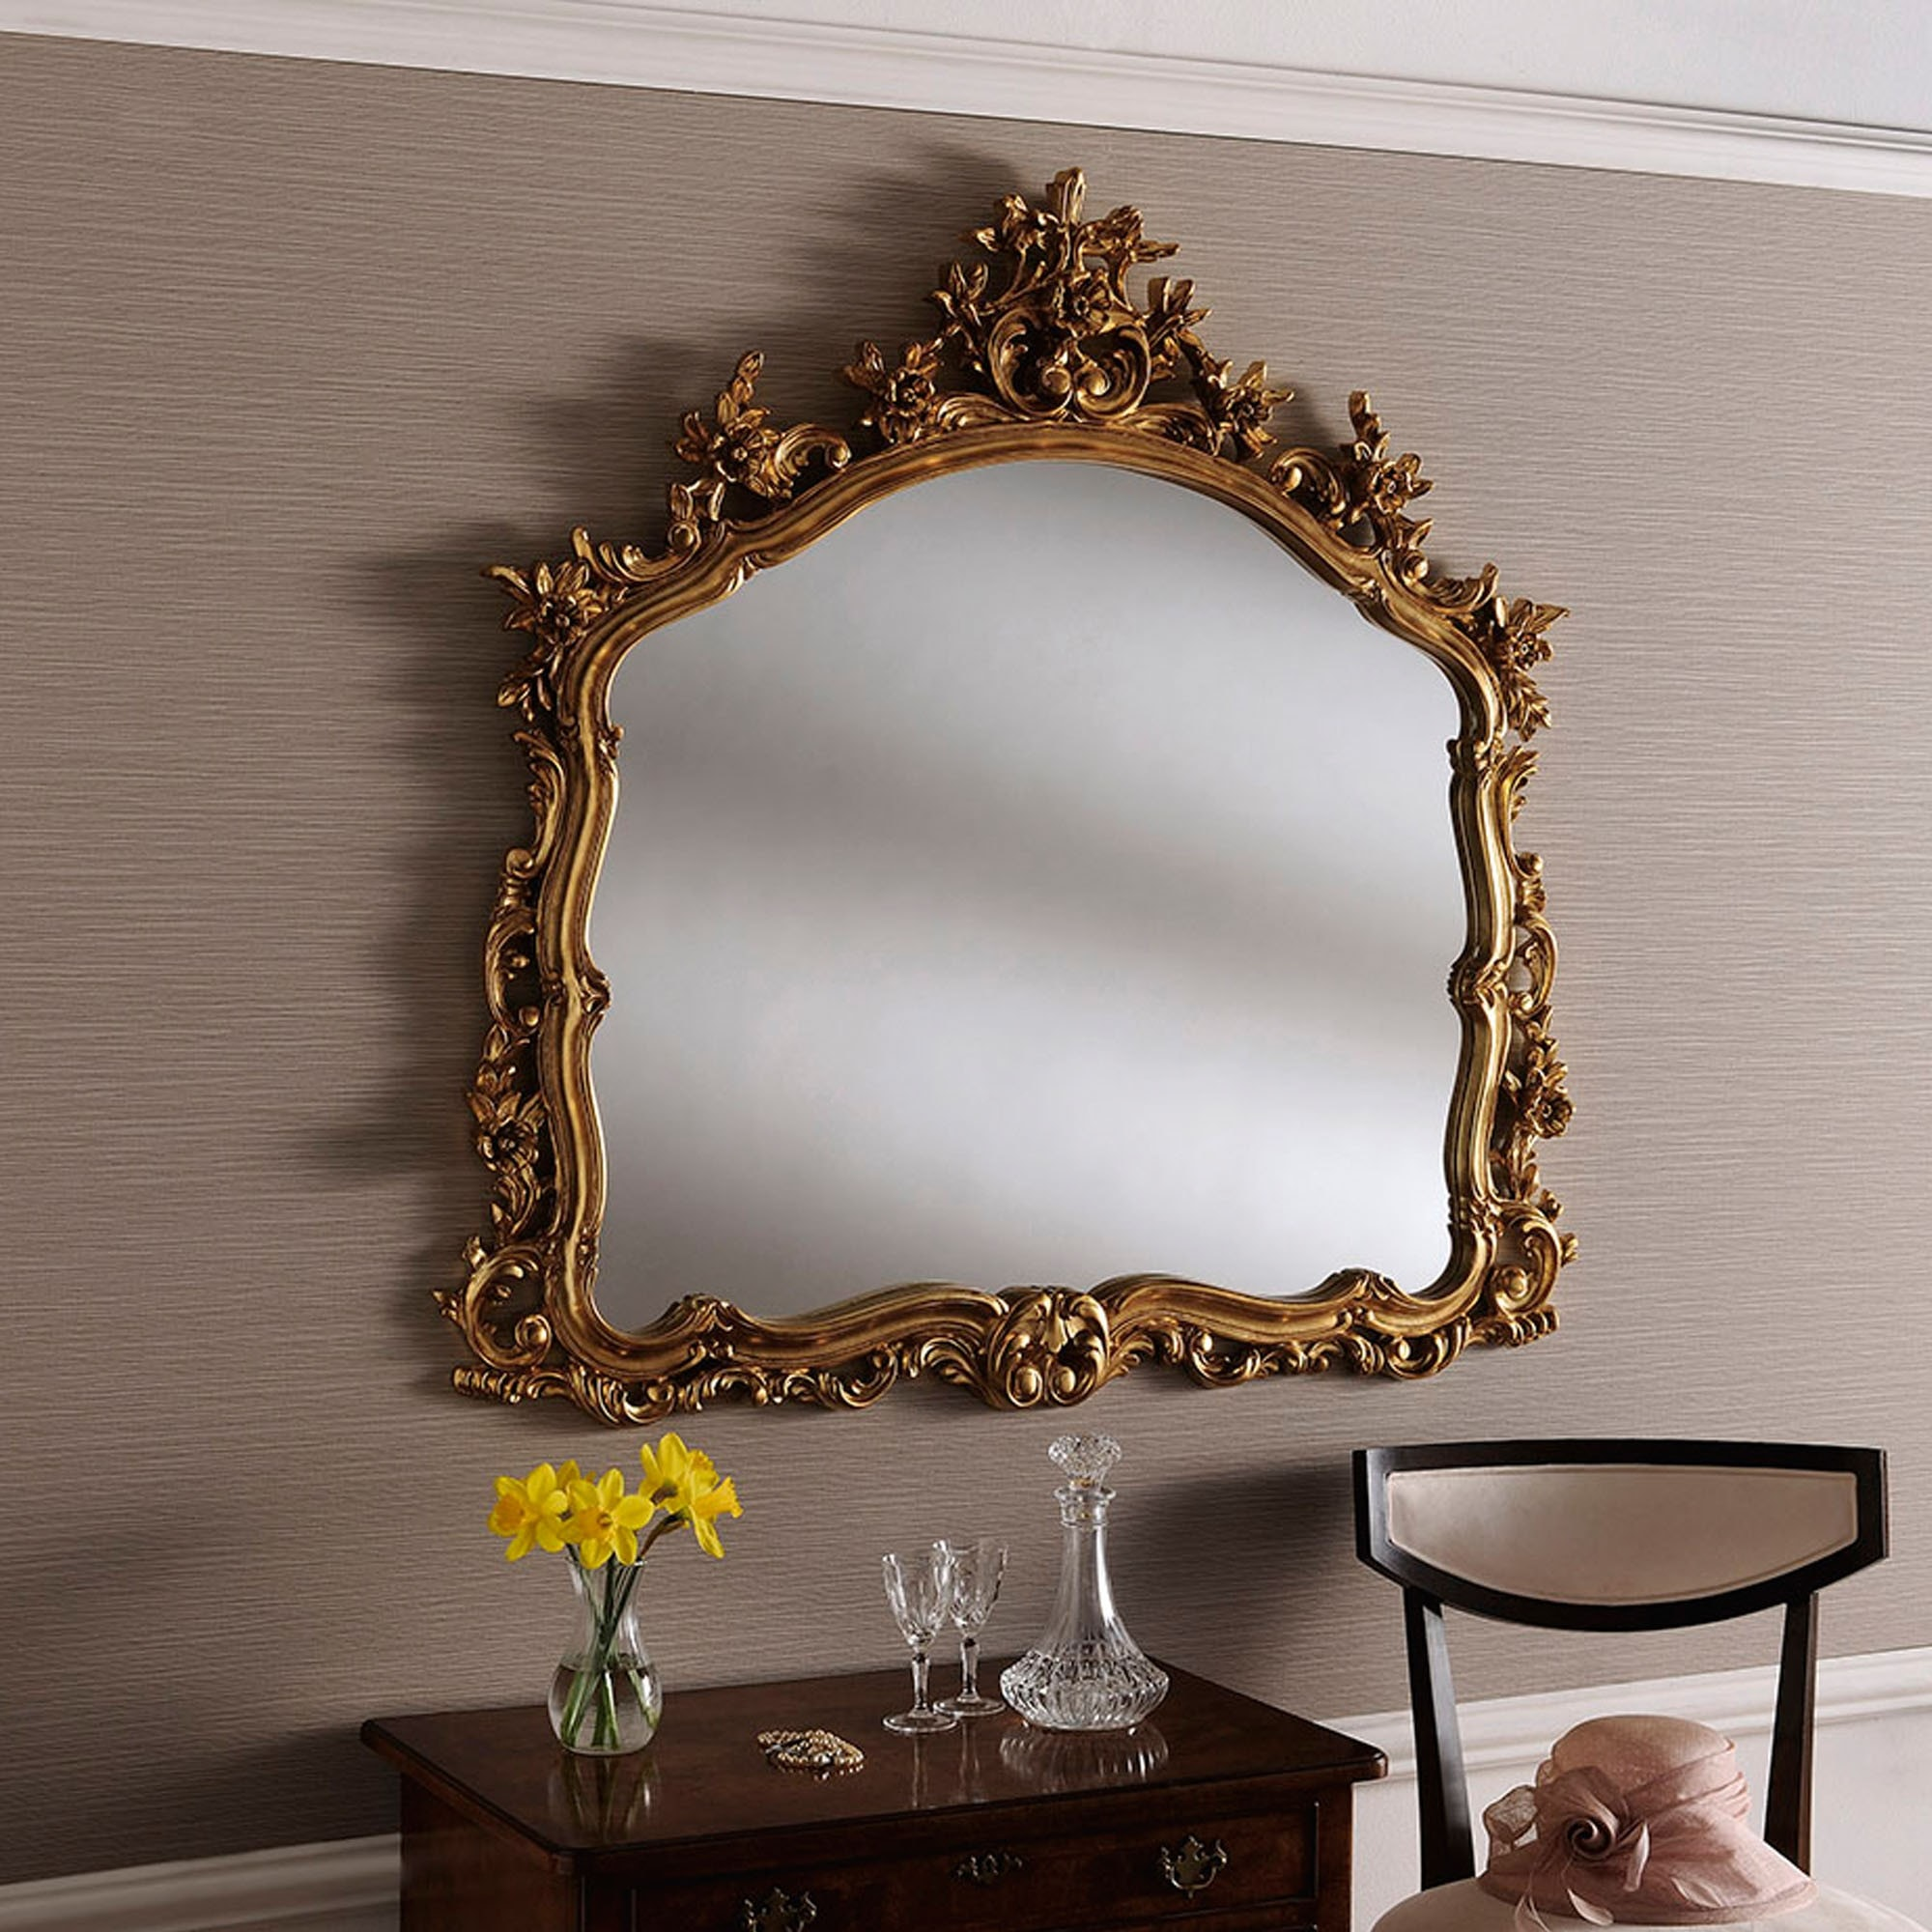 Large Mirrors With Gold Frames Decorative Gold Ornate Wall Mirror Decorative Gold Mirror